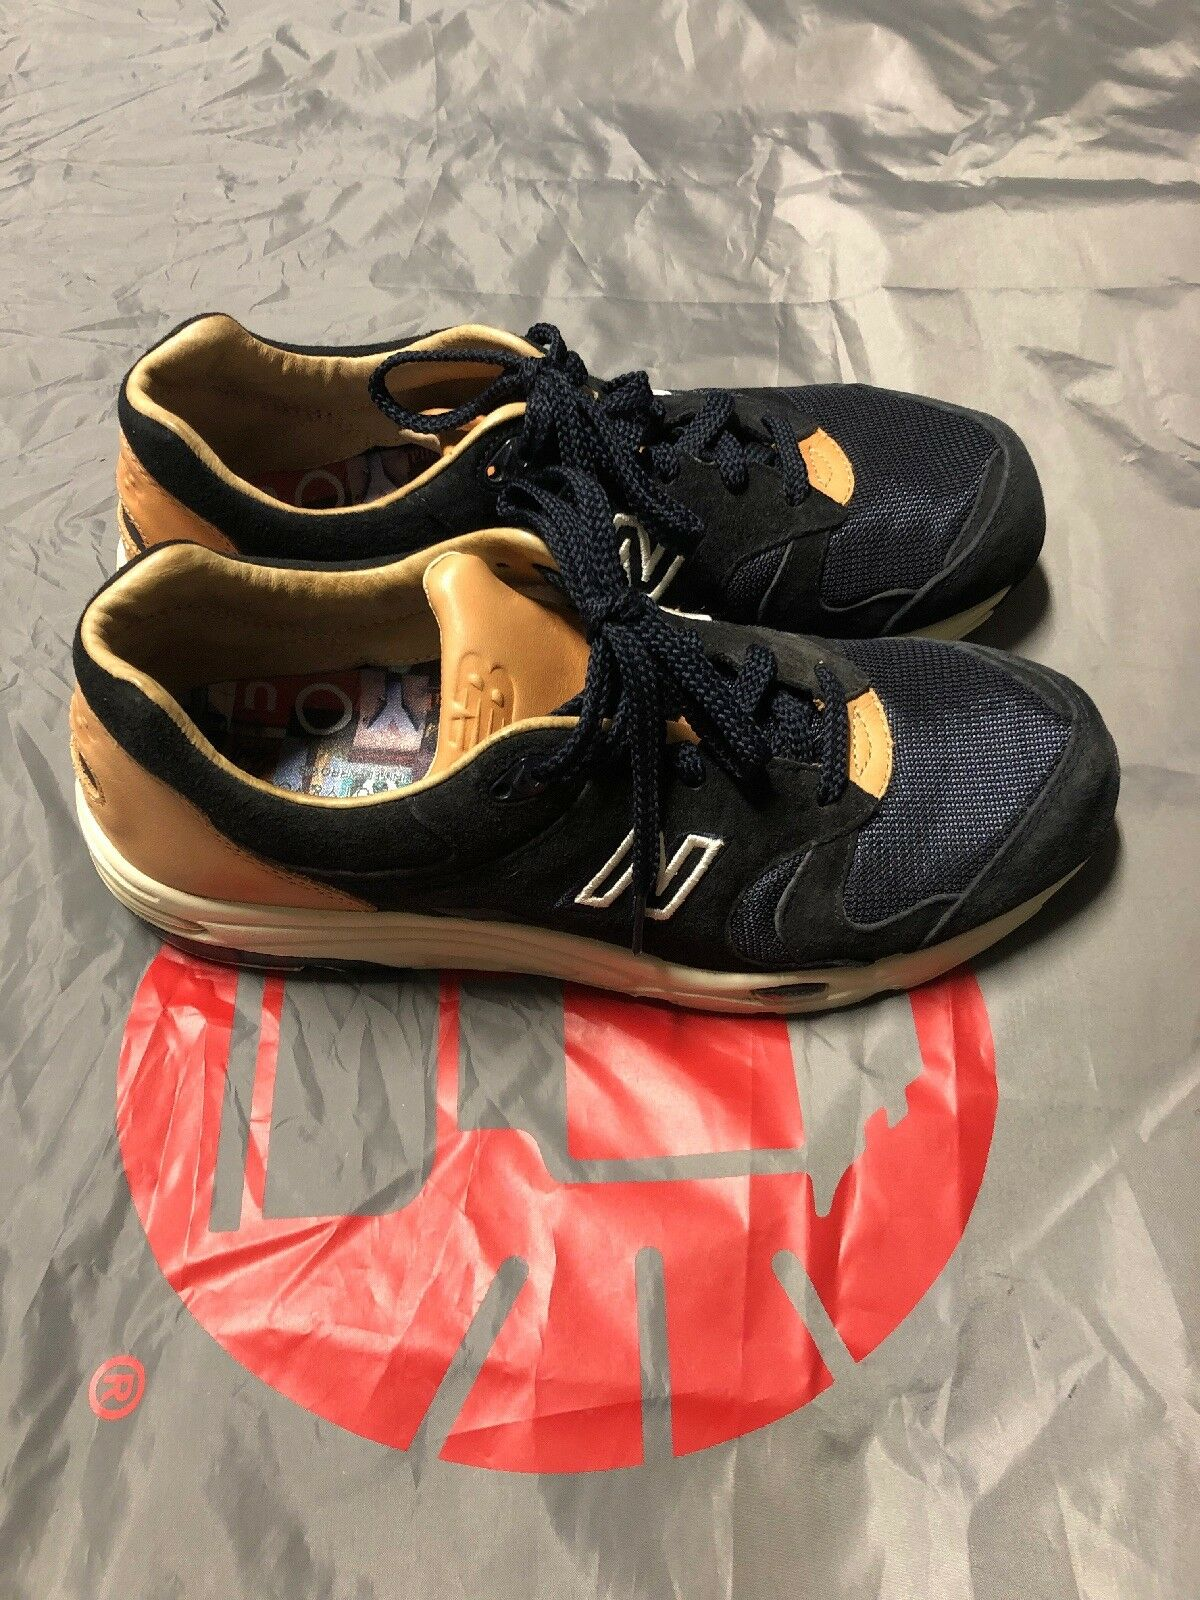 Mens new balance size 10 wide